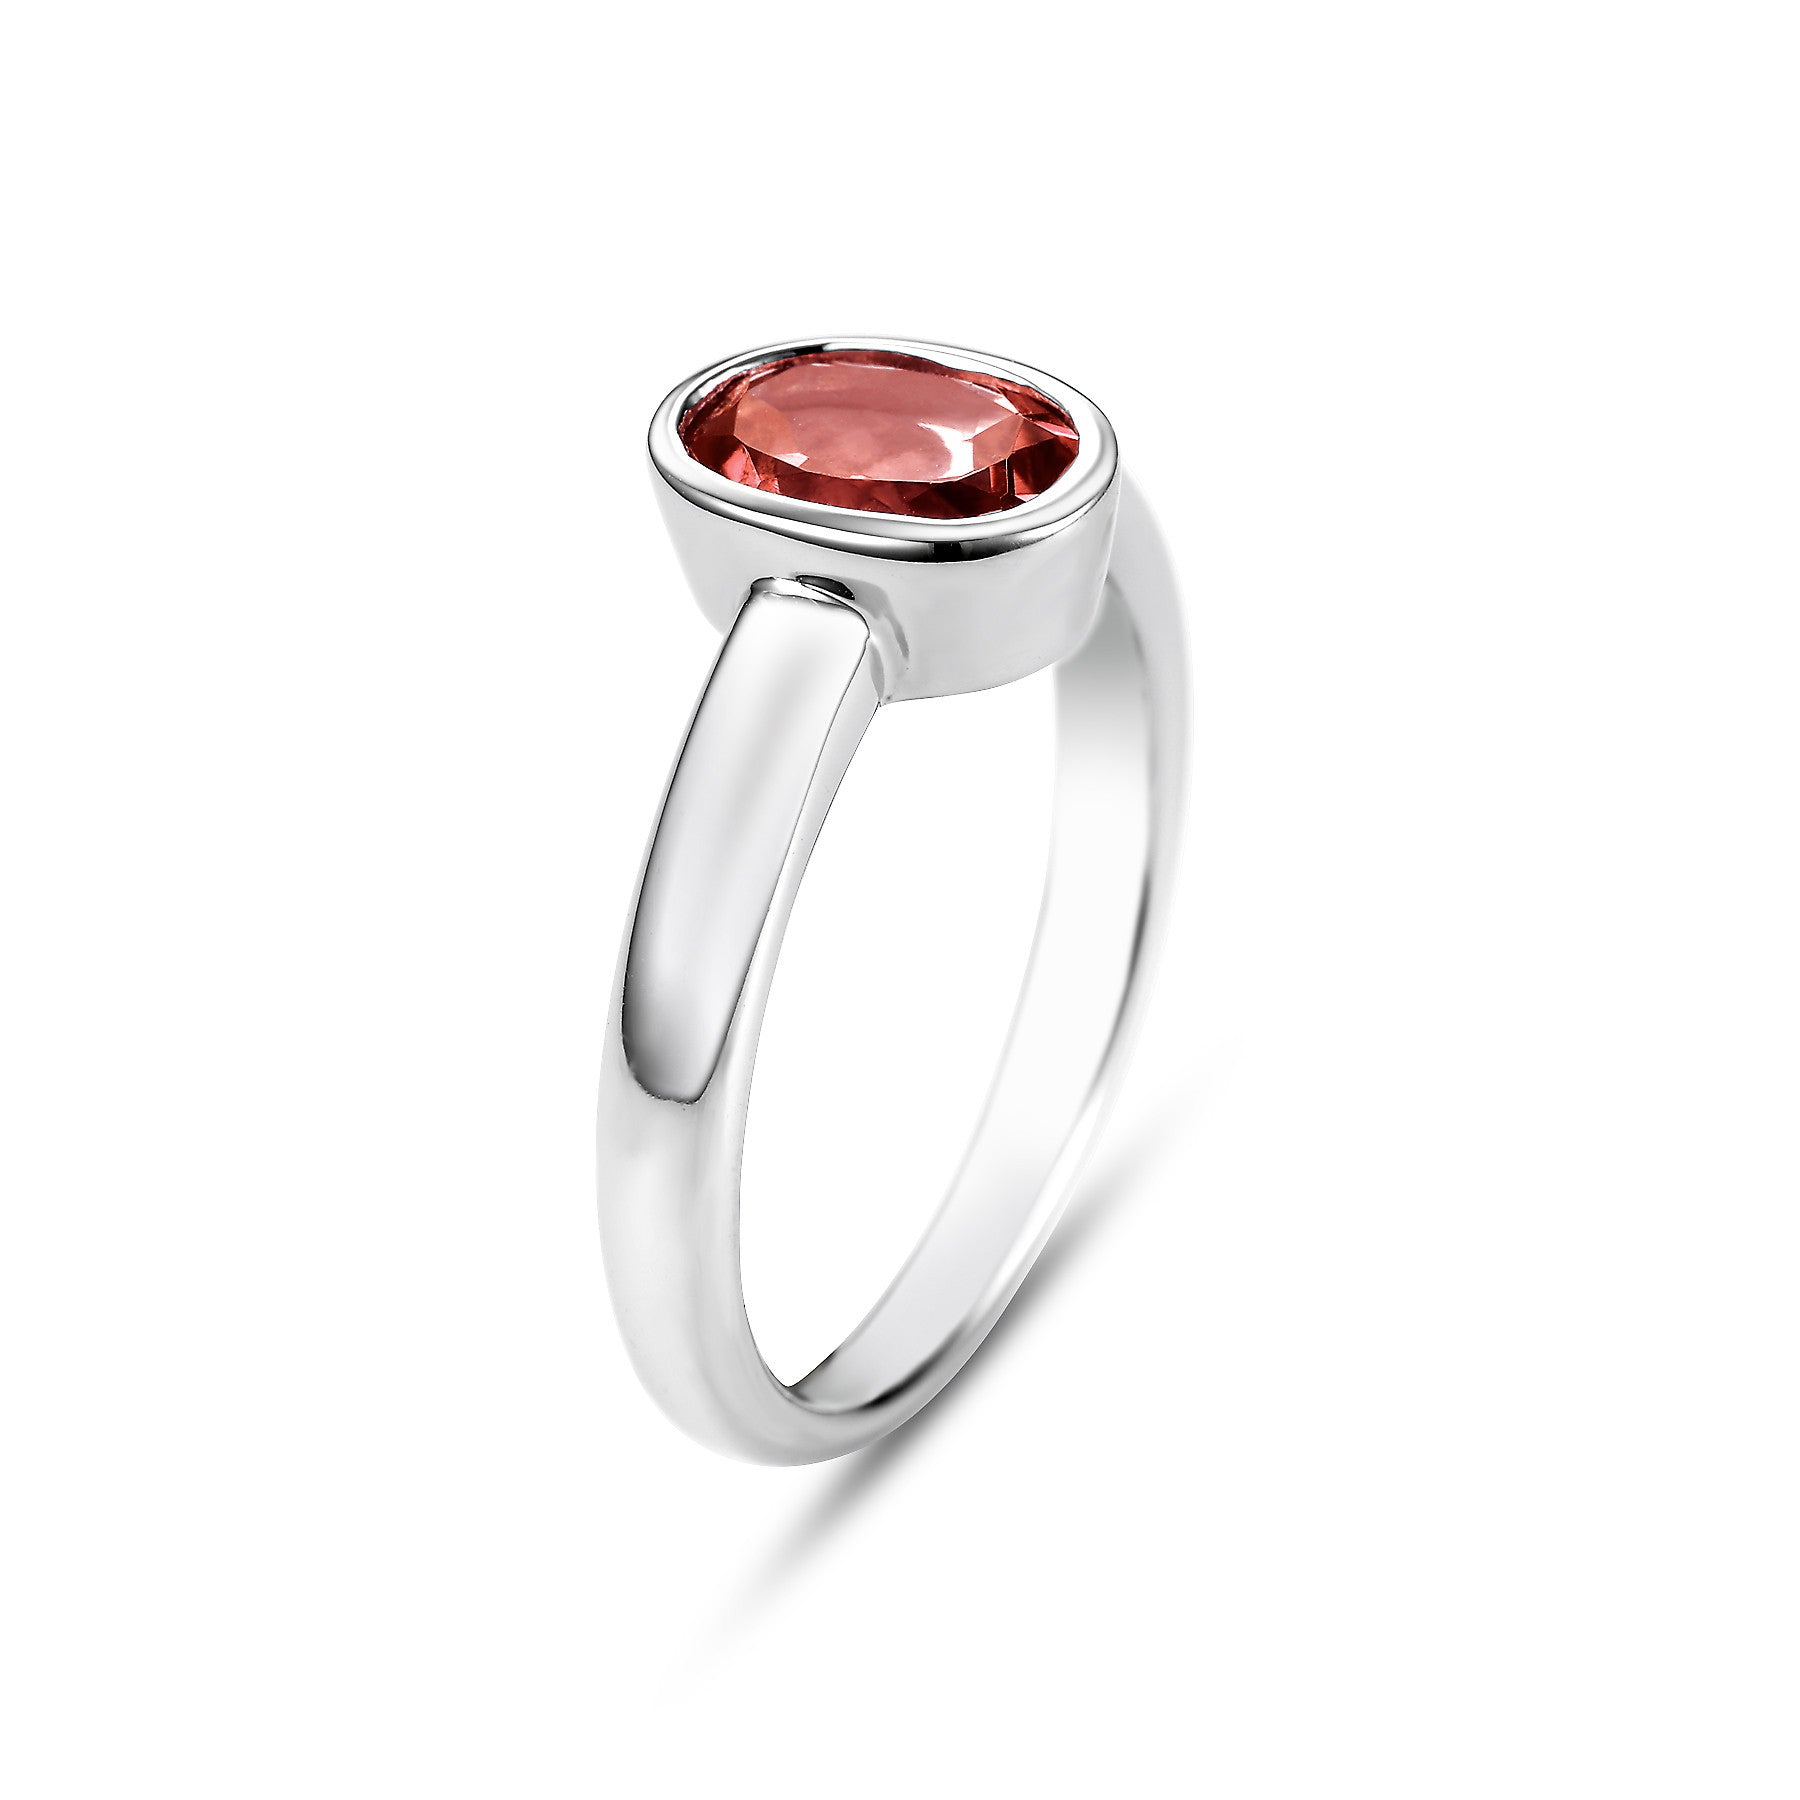 14K White Gold Bezel Set Garnet Ring - Isaac Westman - 3